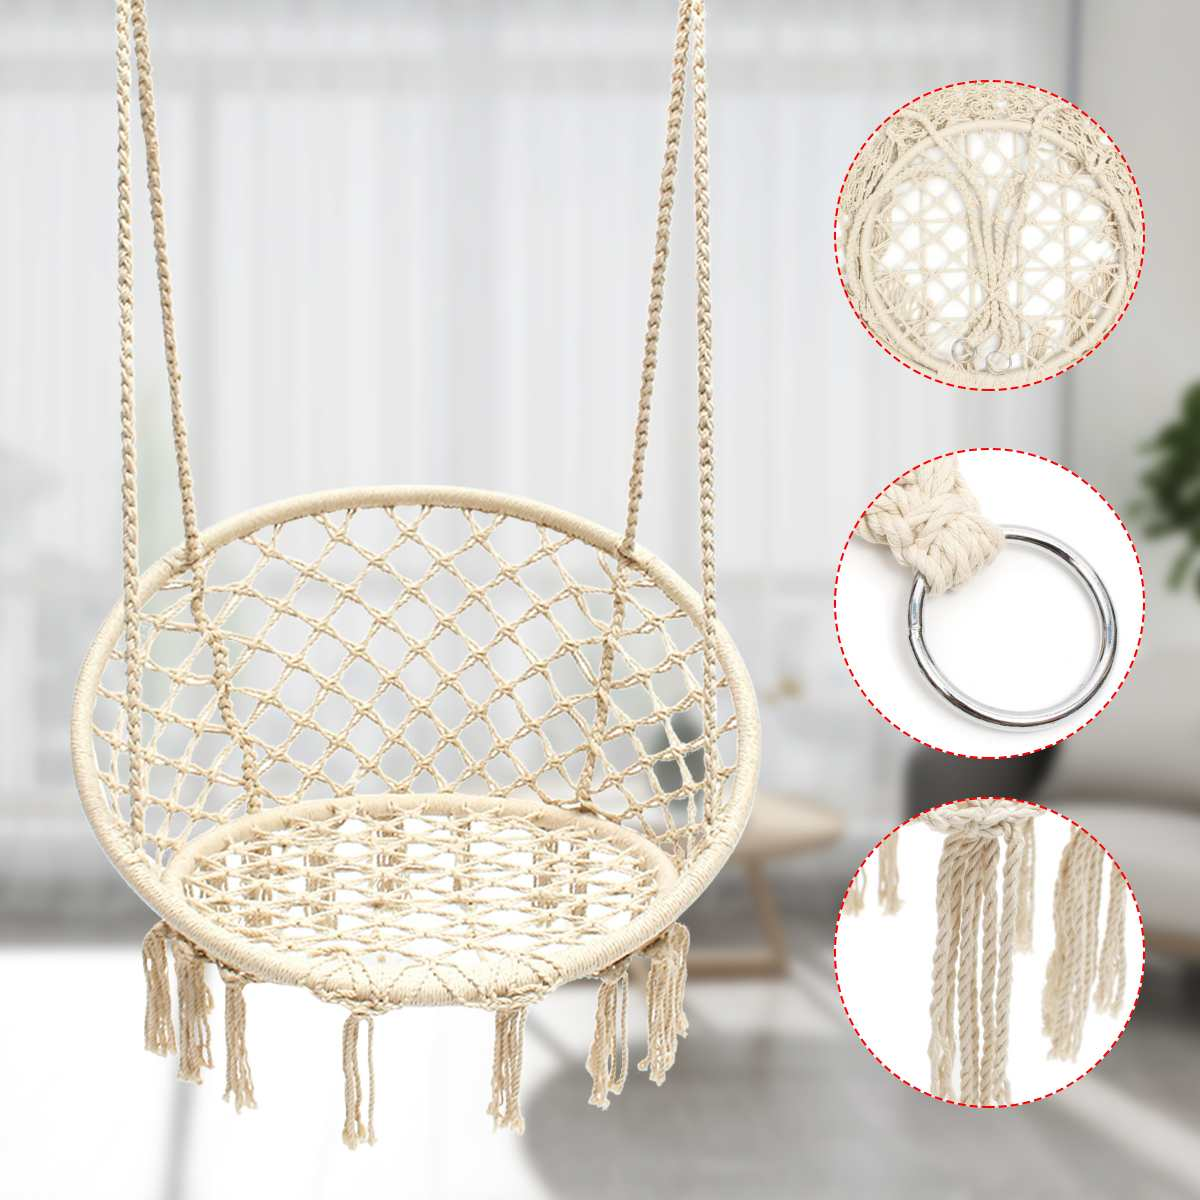 Outdoor Indoor Handmade Knitted Round Hanging Hammock Chair Nordic Style Dormitory Bedroom Baby Kid Hanging Chair Children Swing